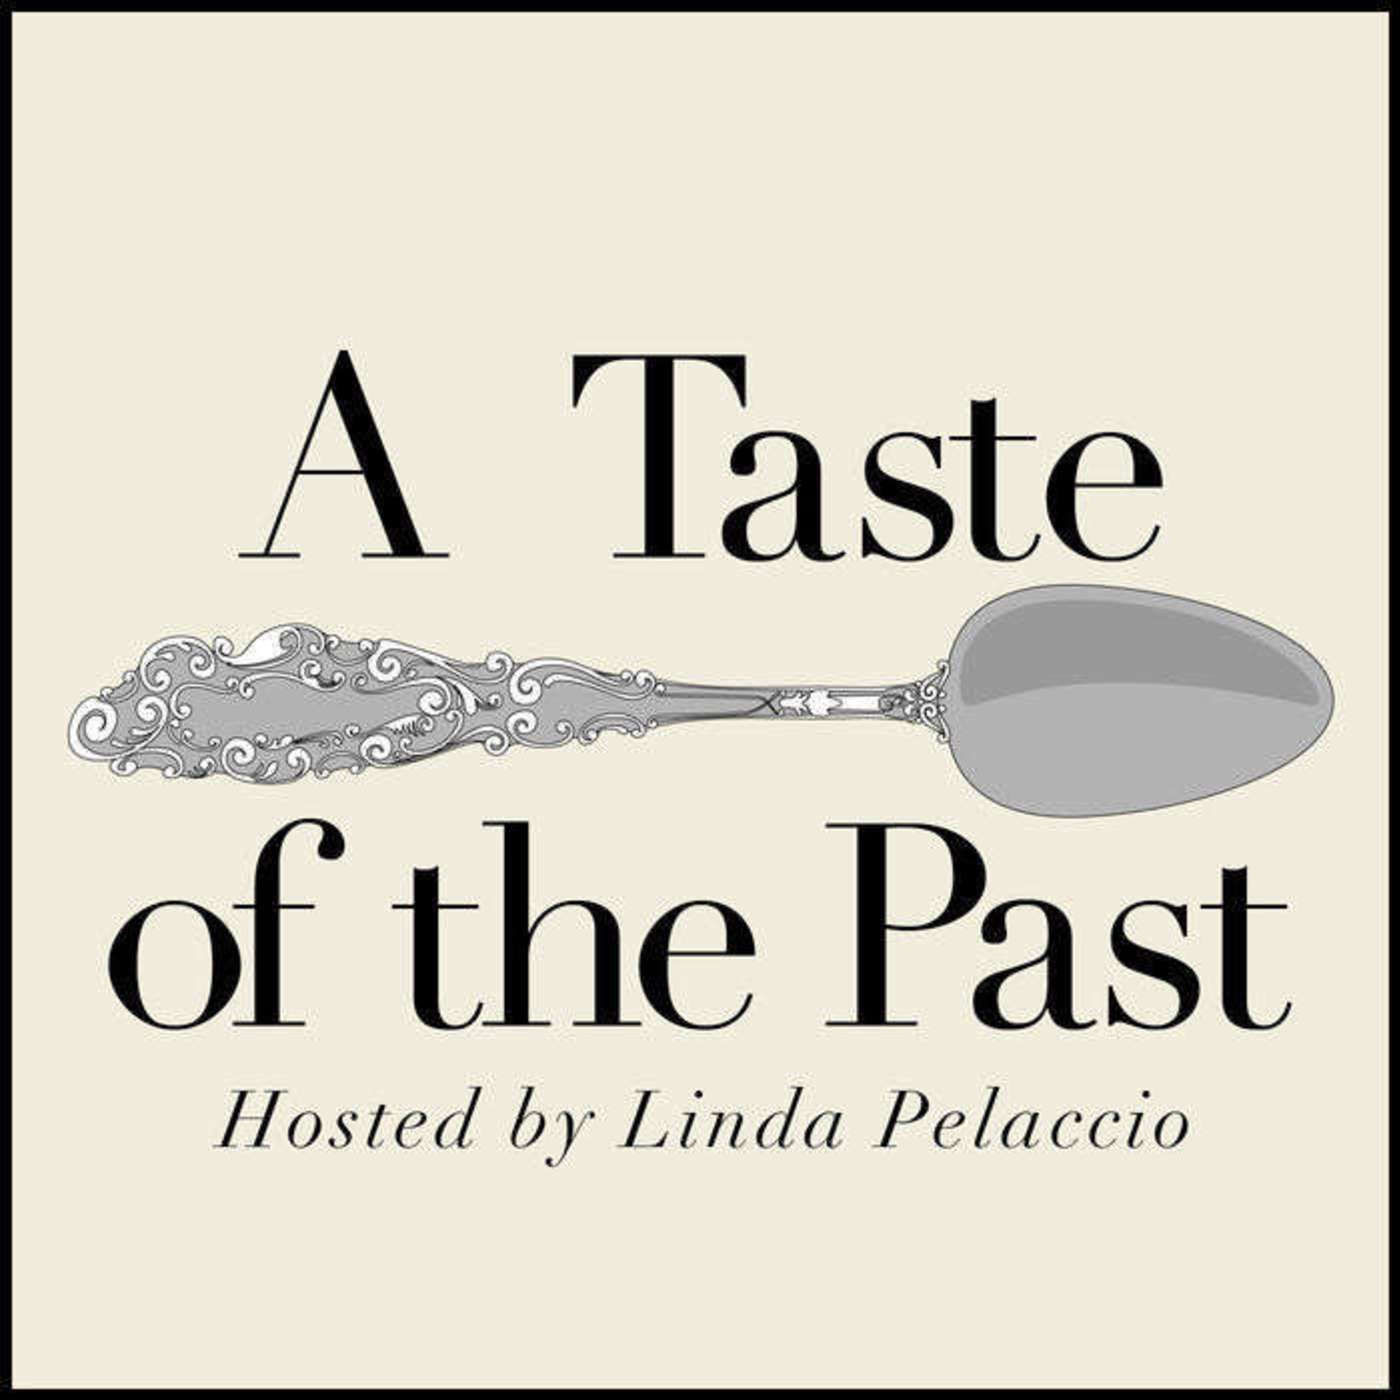 Episode 172: Real Pasta with Maureen Fant